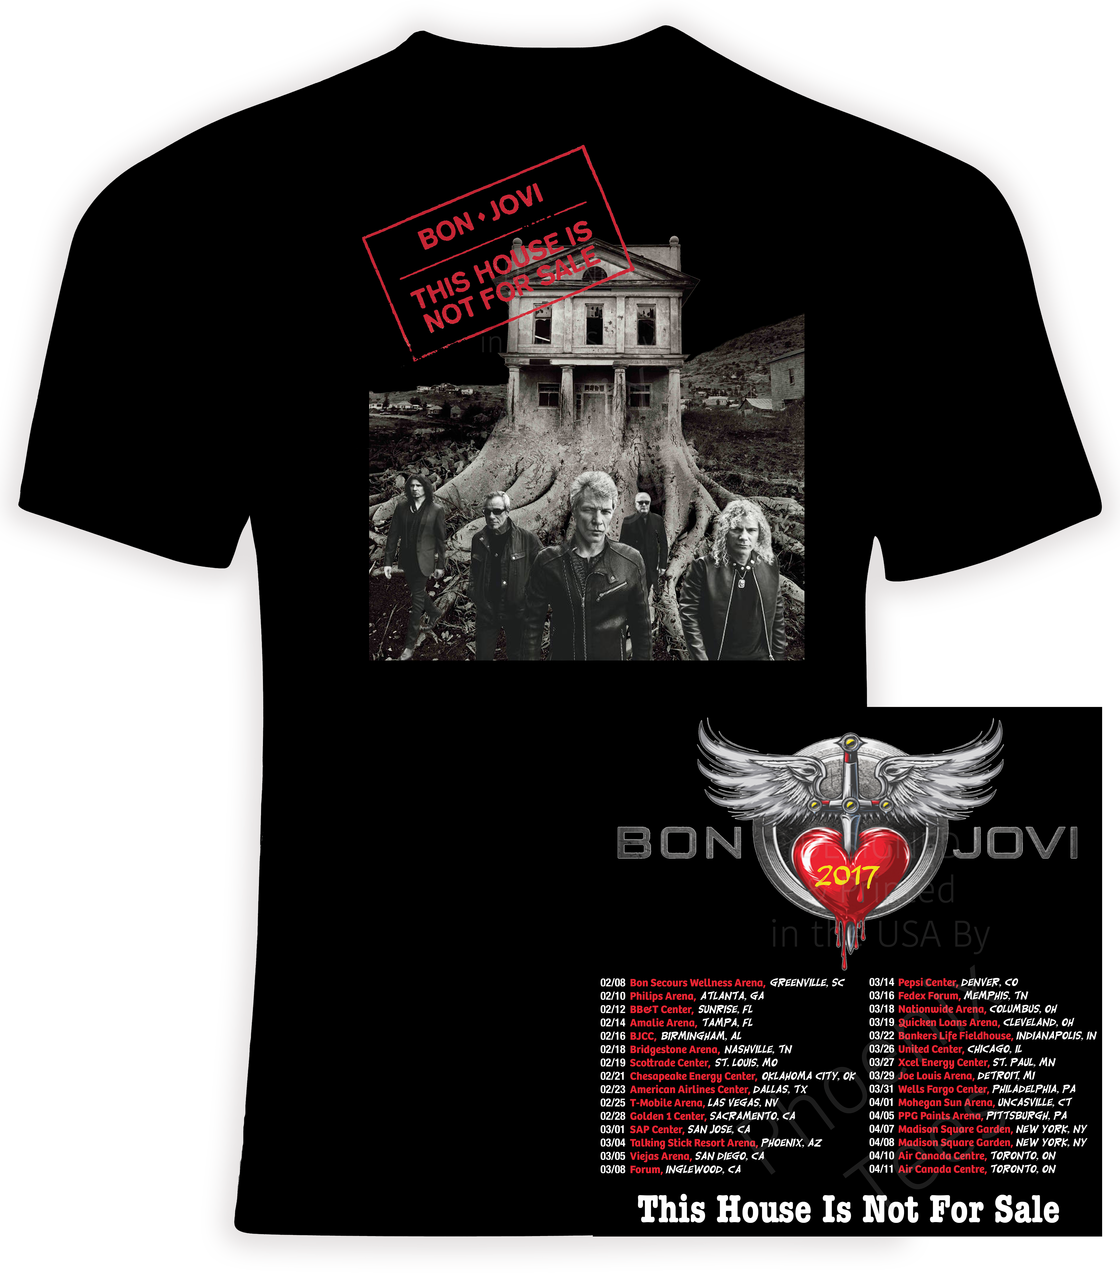 Official Bon Jovi 2016 Tour T-shirt | All Products for Live Show ...